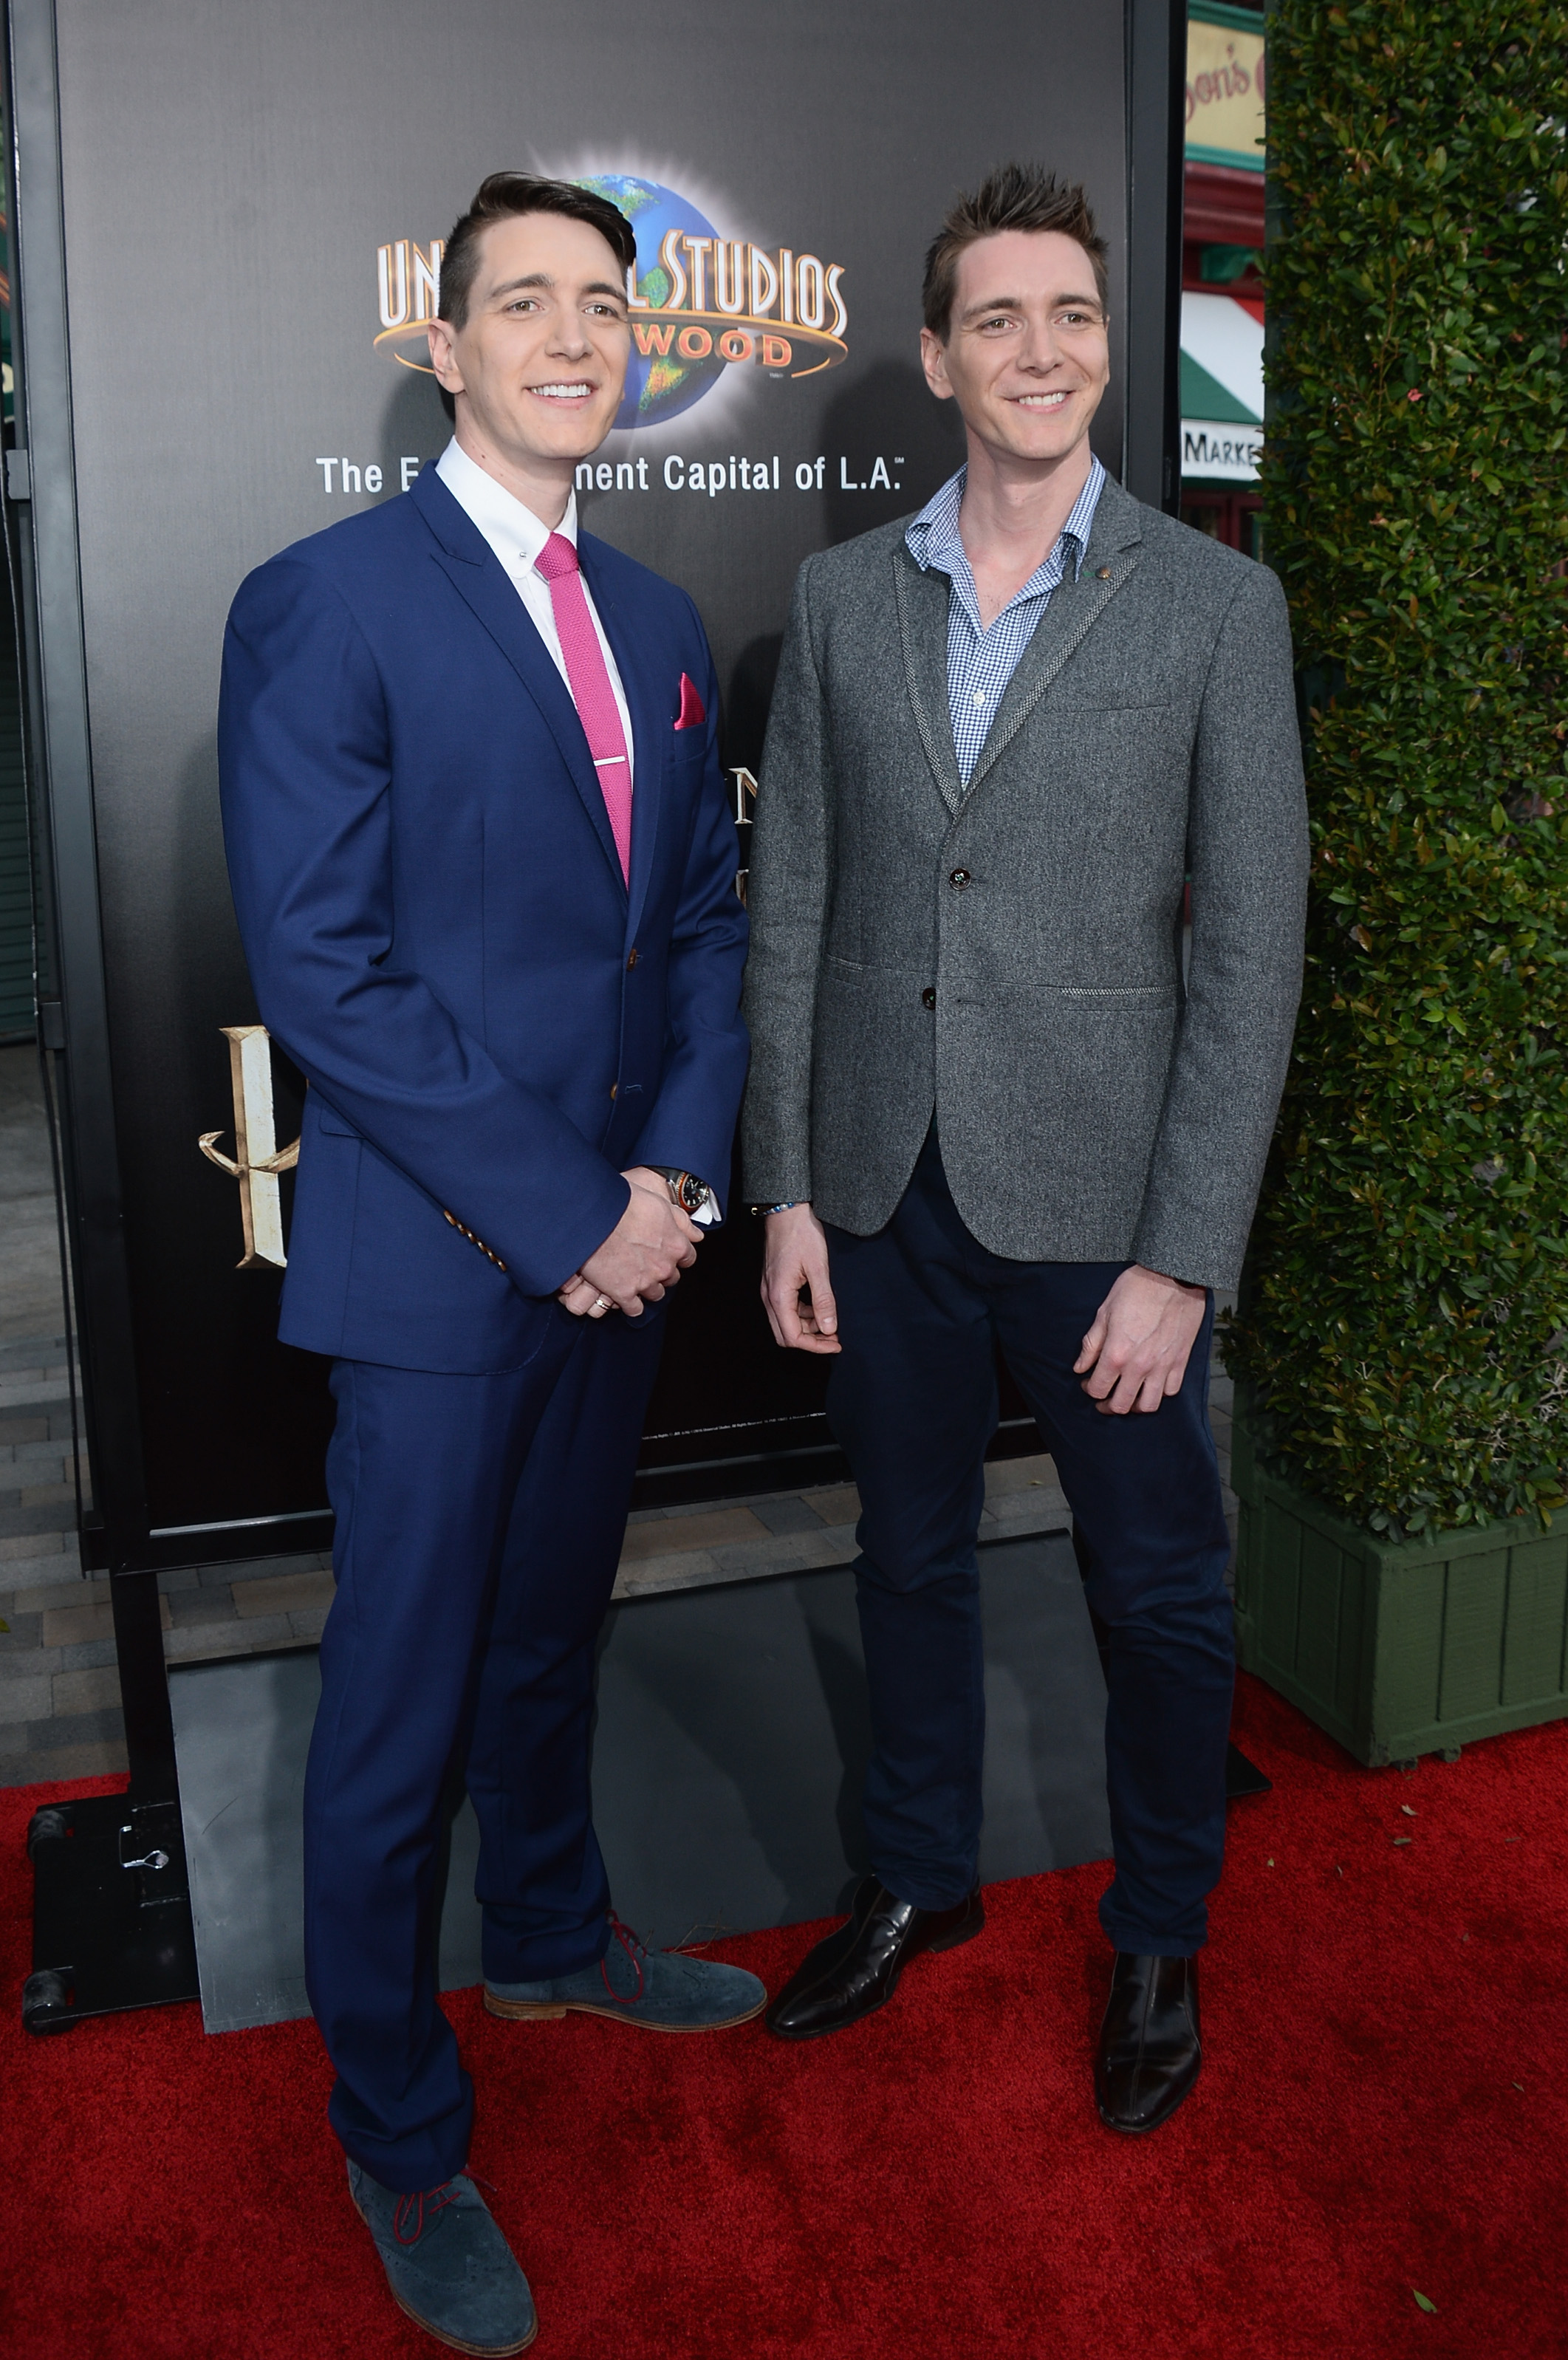 "UNIVERSAL CITY, CALIFORNIA - APRIL 05: Actors Oliver Phelps and James Phelps attend Universal Studios' ""Wizarding World of Harry Potter Opening"" at Universal Studios Hollywood on April 5, 2016 in Universal City, California. (Photo by Matt Winkelmeyer/Getty Images)"